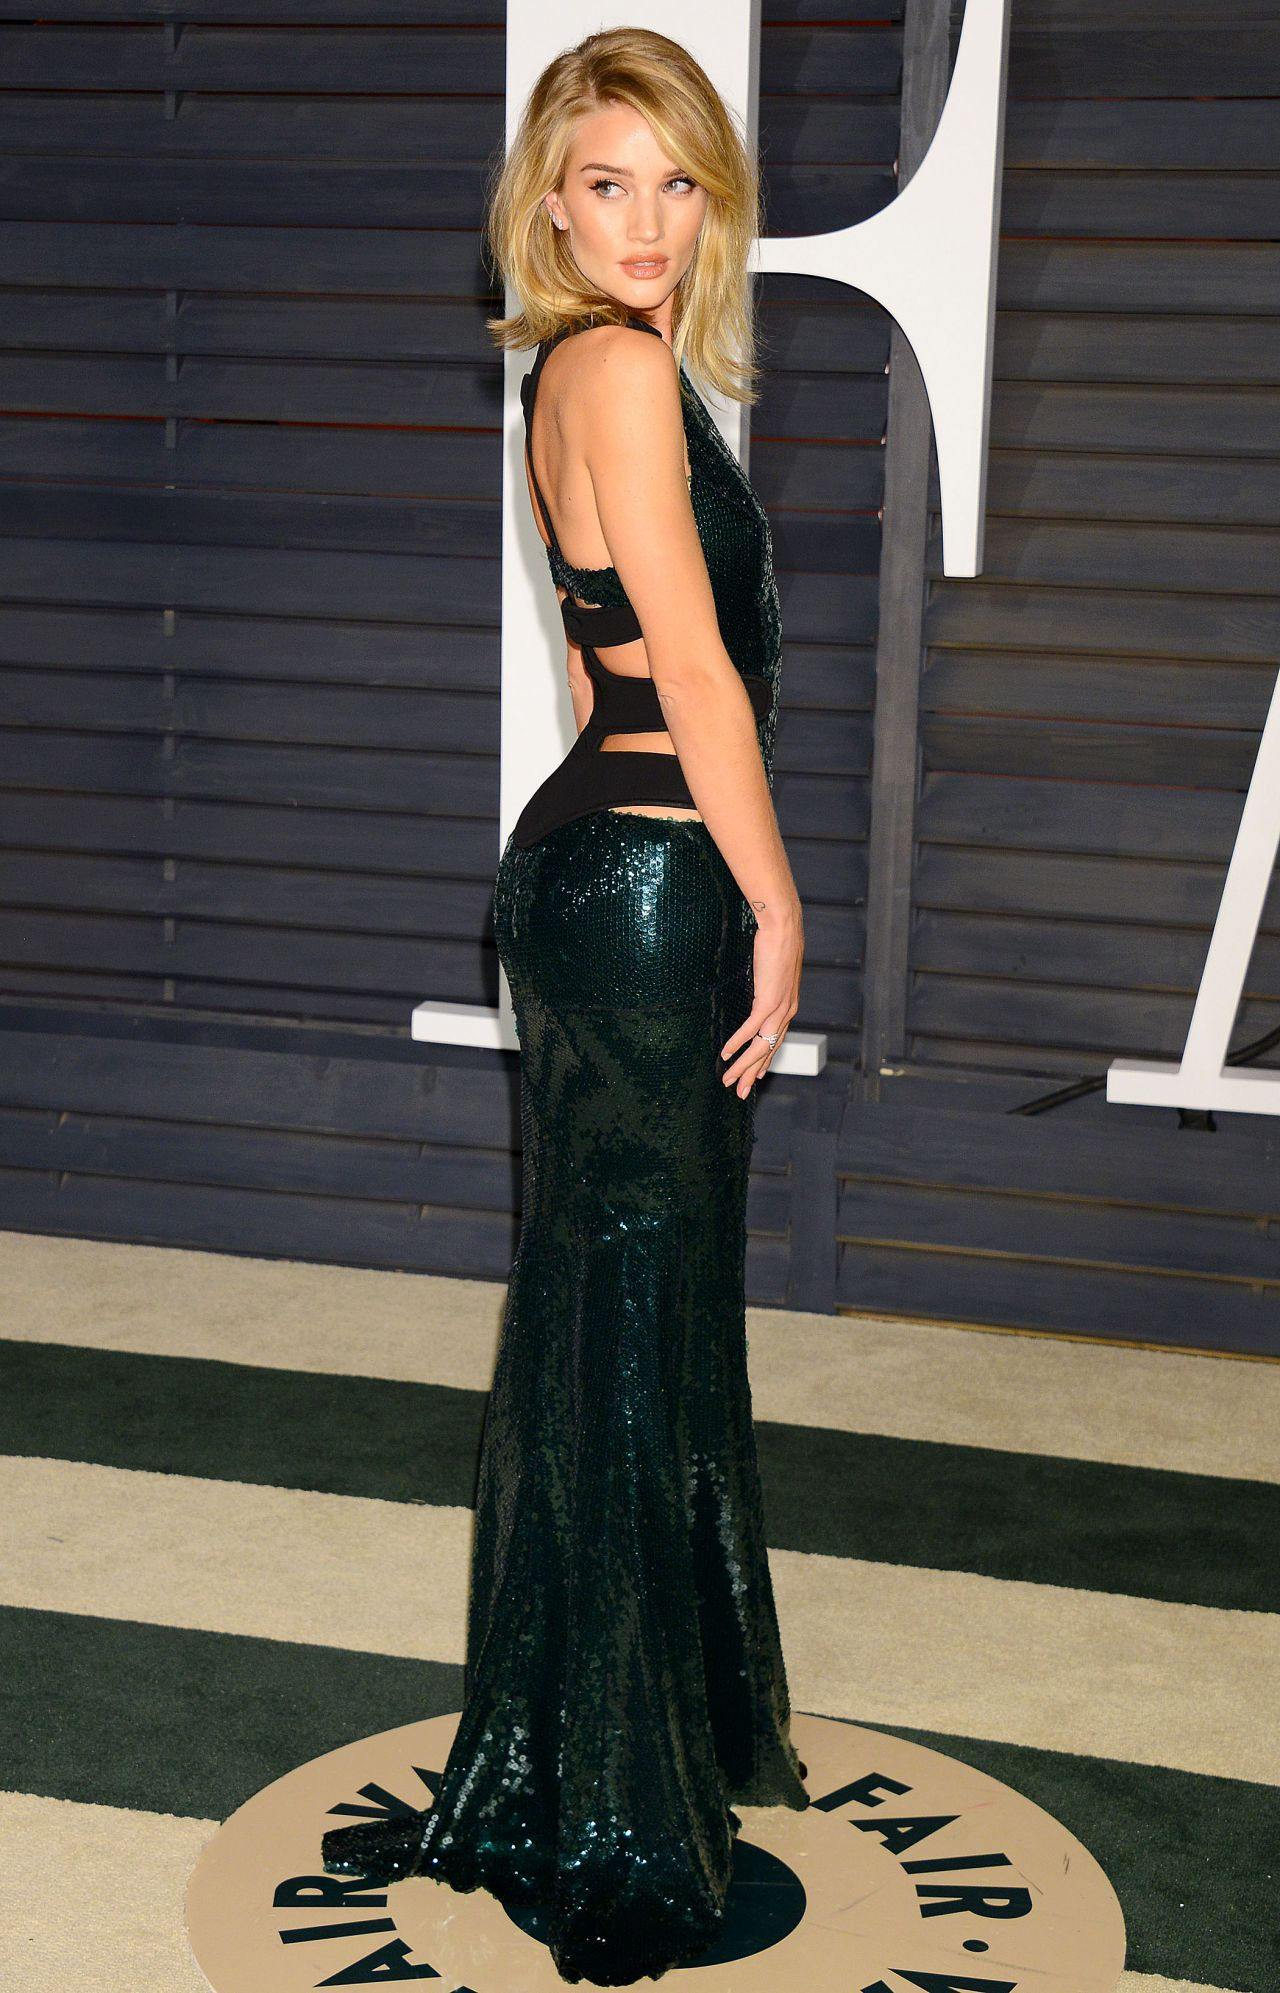 Rosie Huntington-Whiteley - 2015 Vanity Fair Oscar Party in Hollywood Rosie Huntington Whiteley